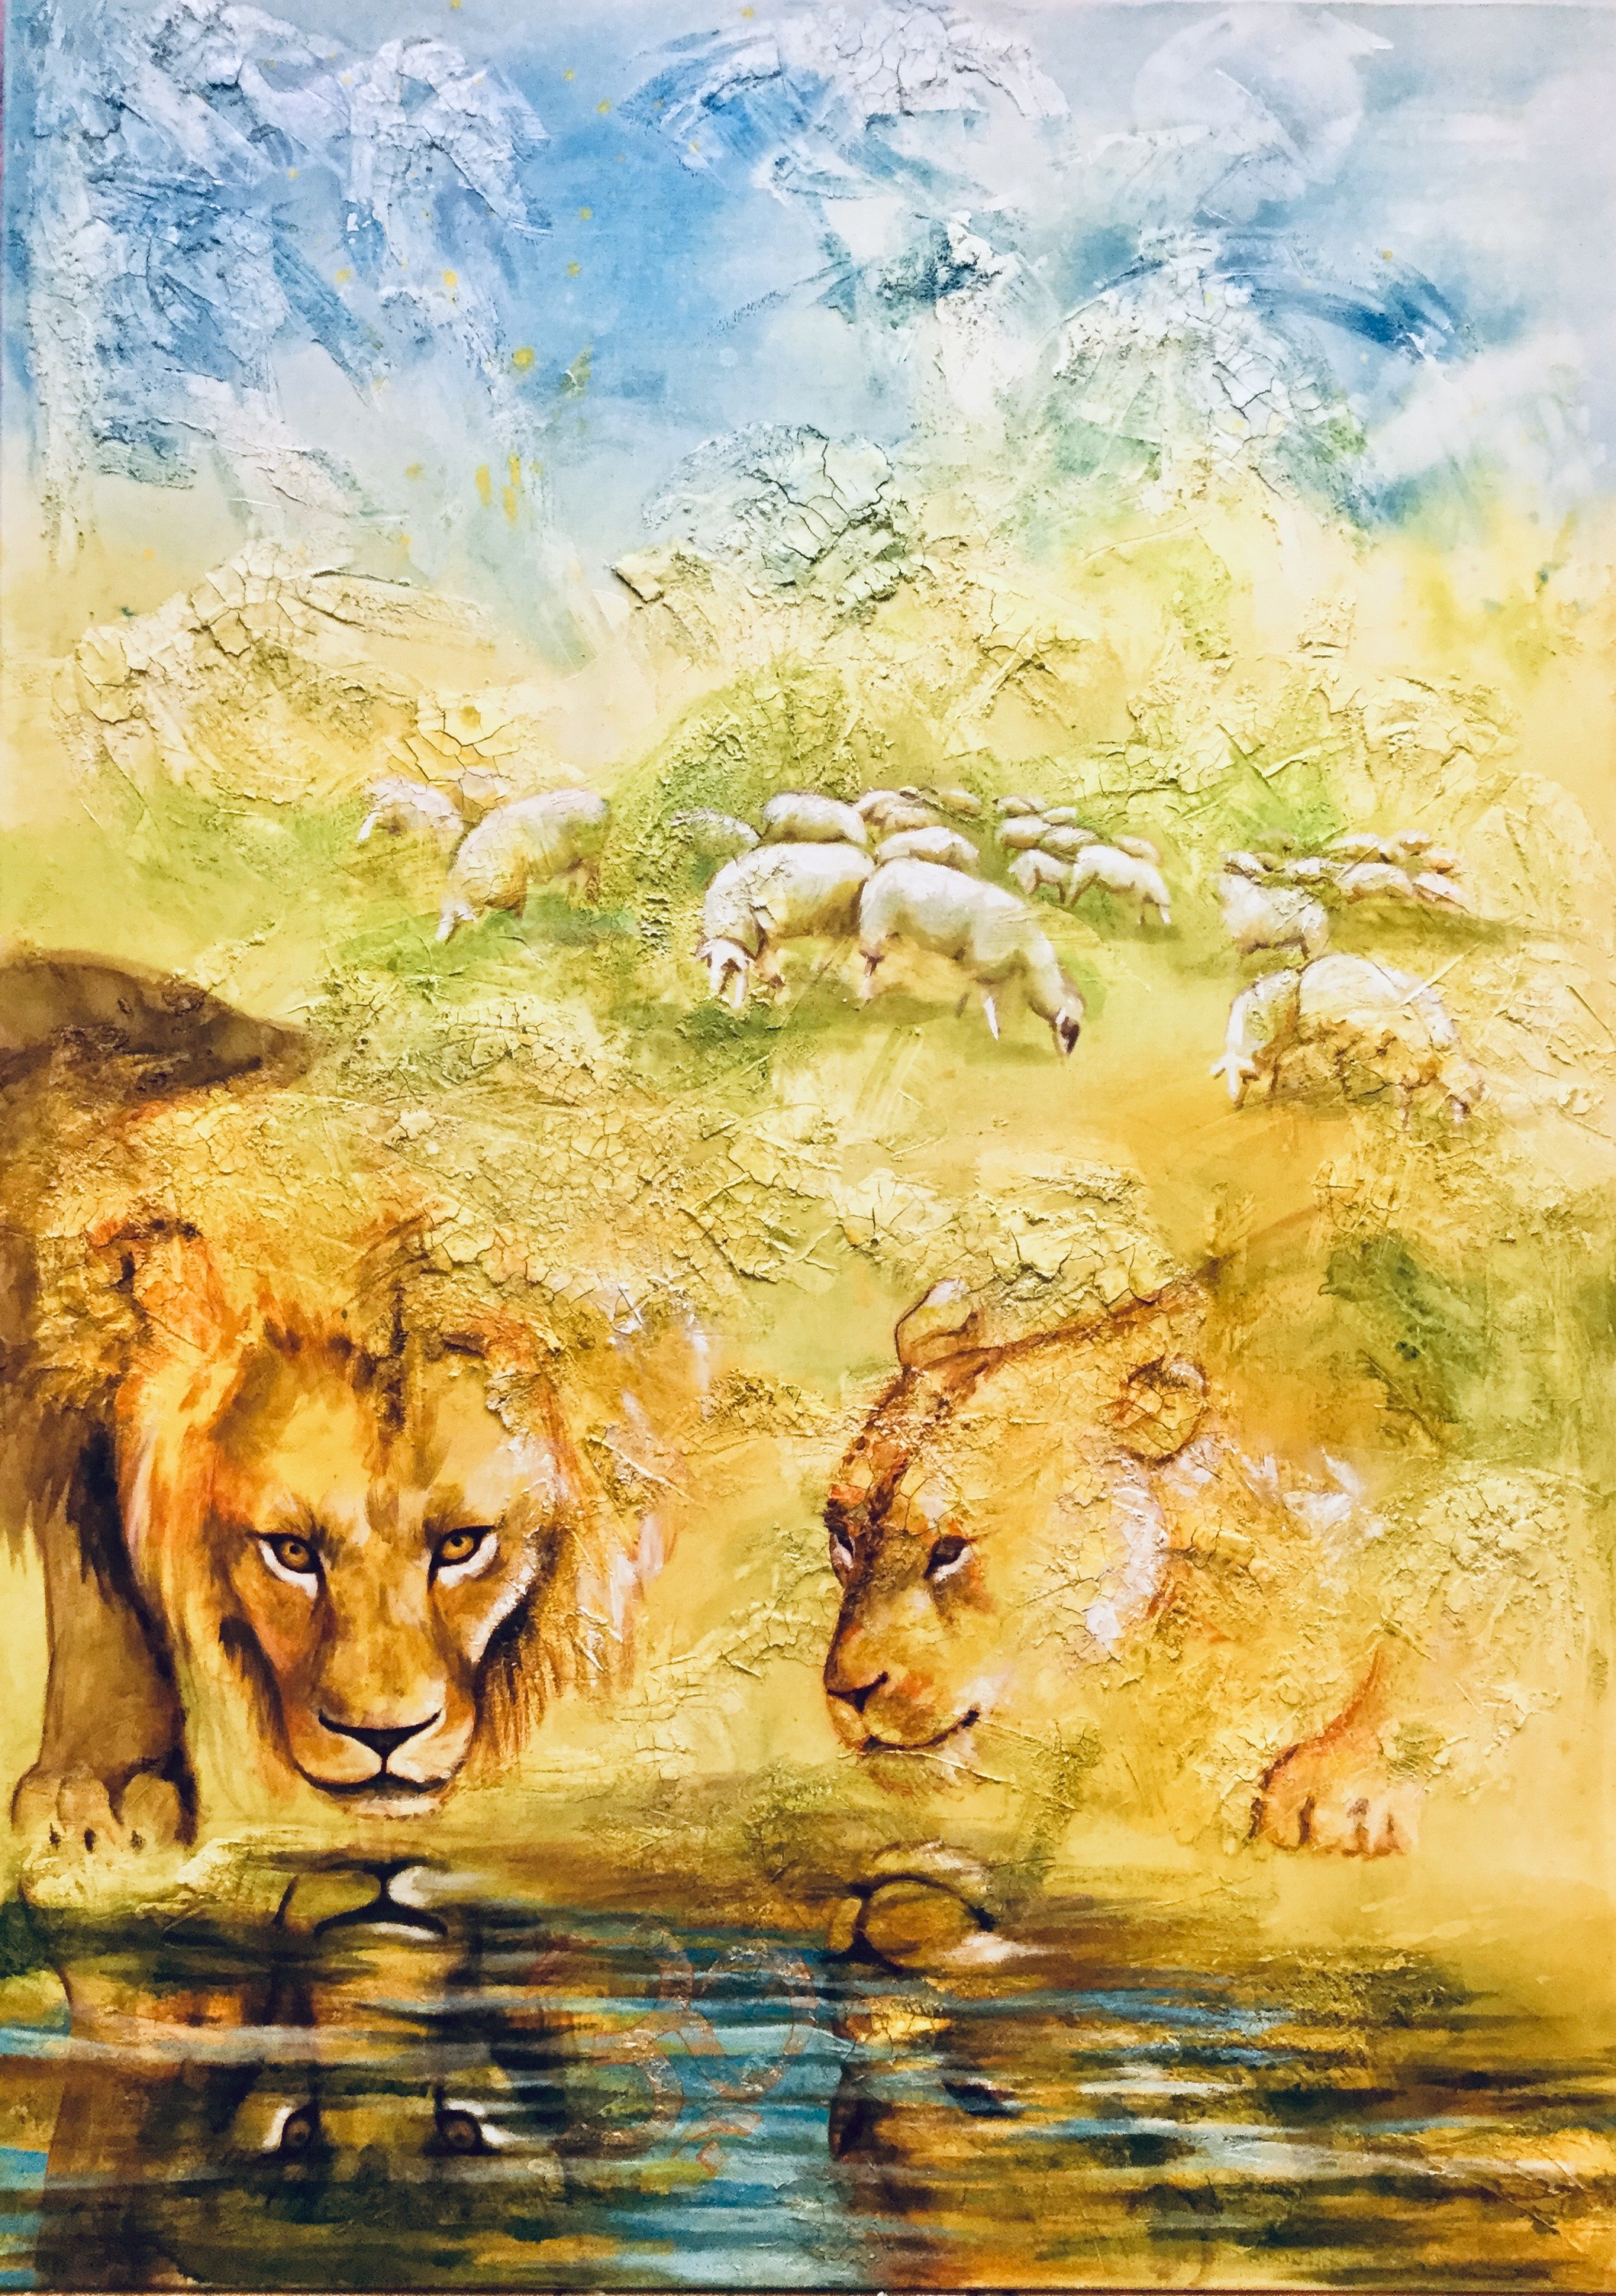 The Lion and the Sheep